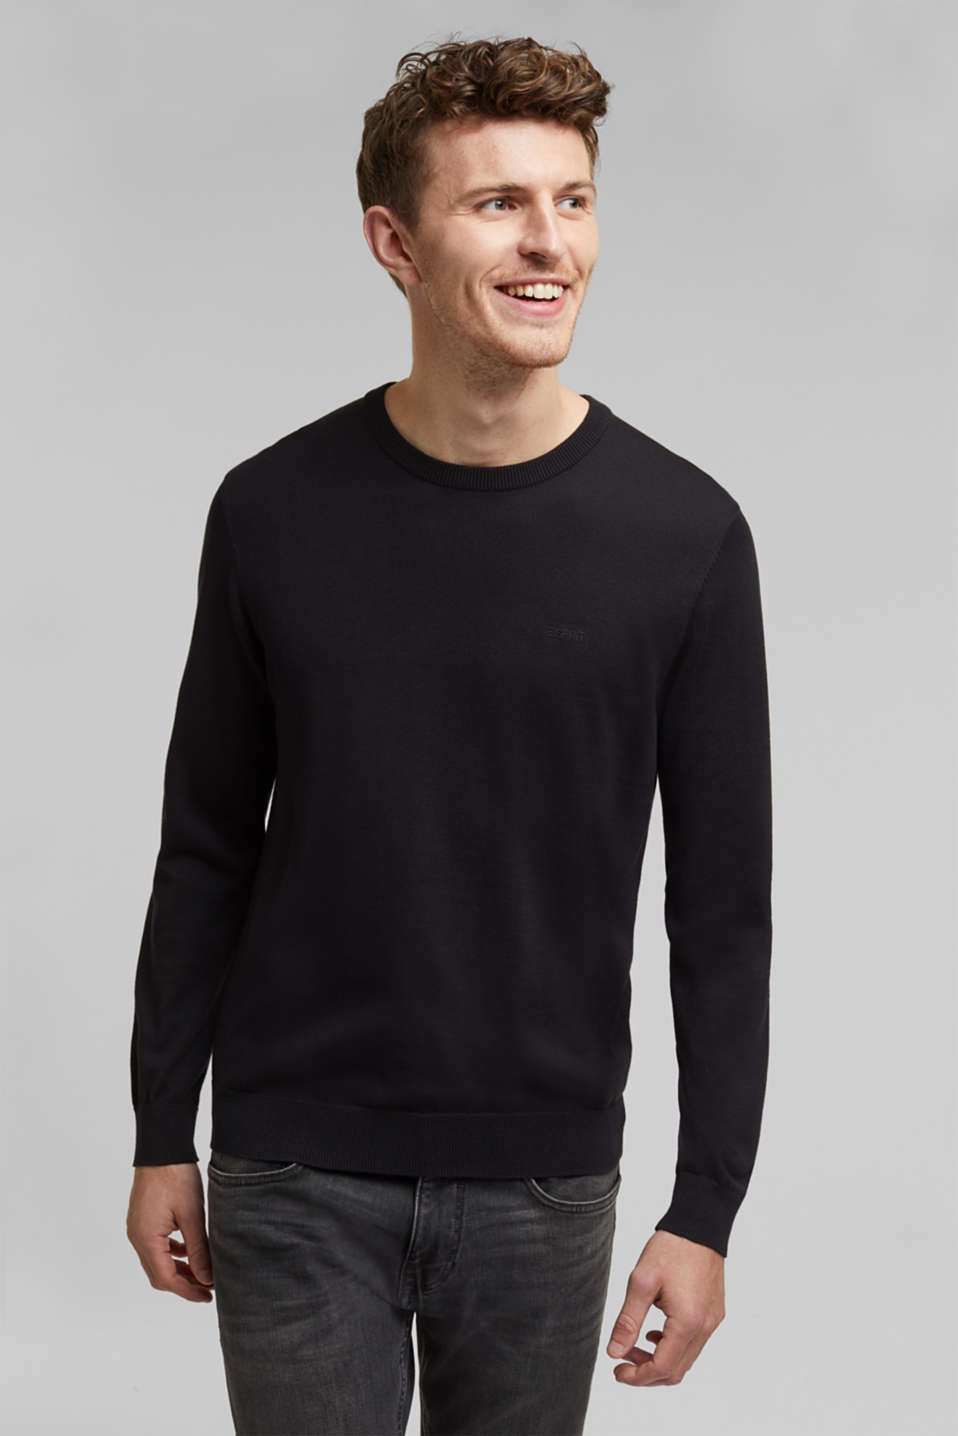 Jumper with a round neckline, 100% cotton, BLACK, detail image number 0